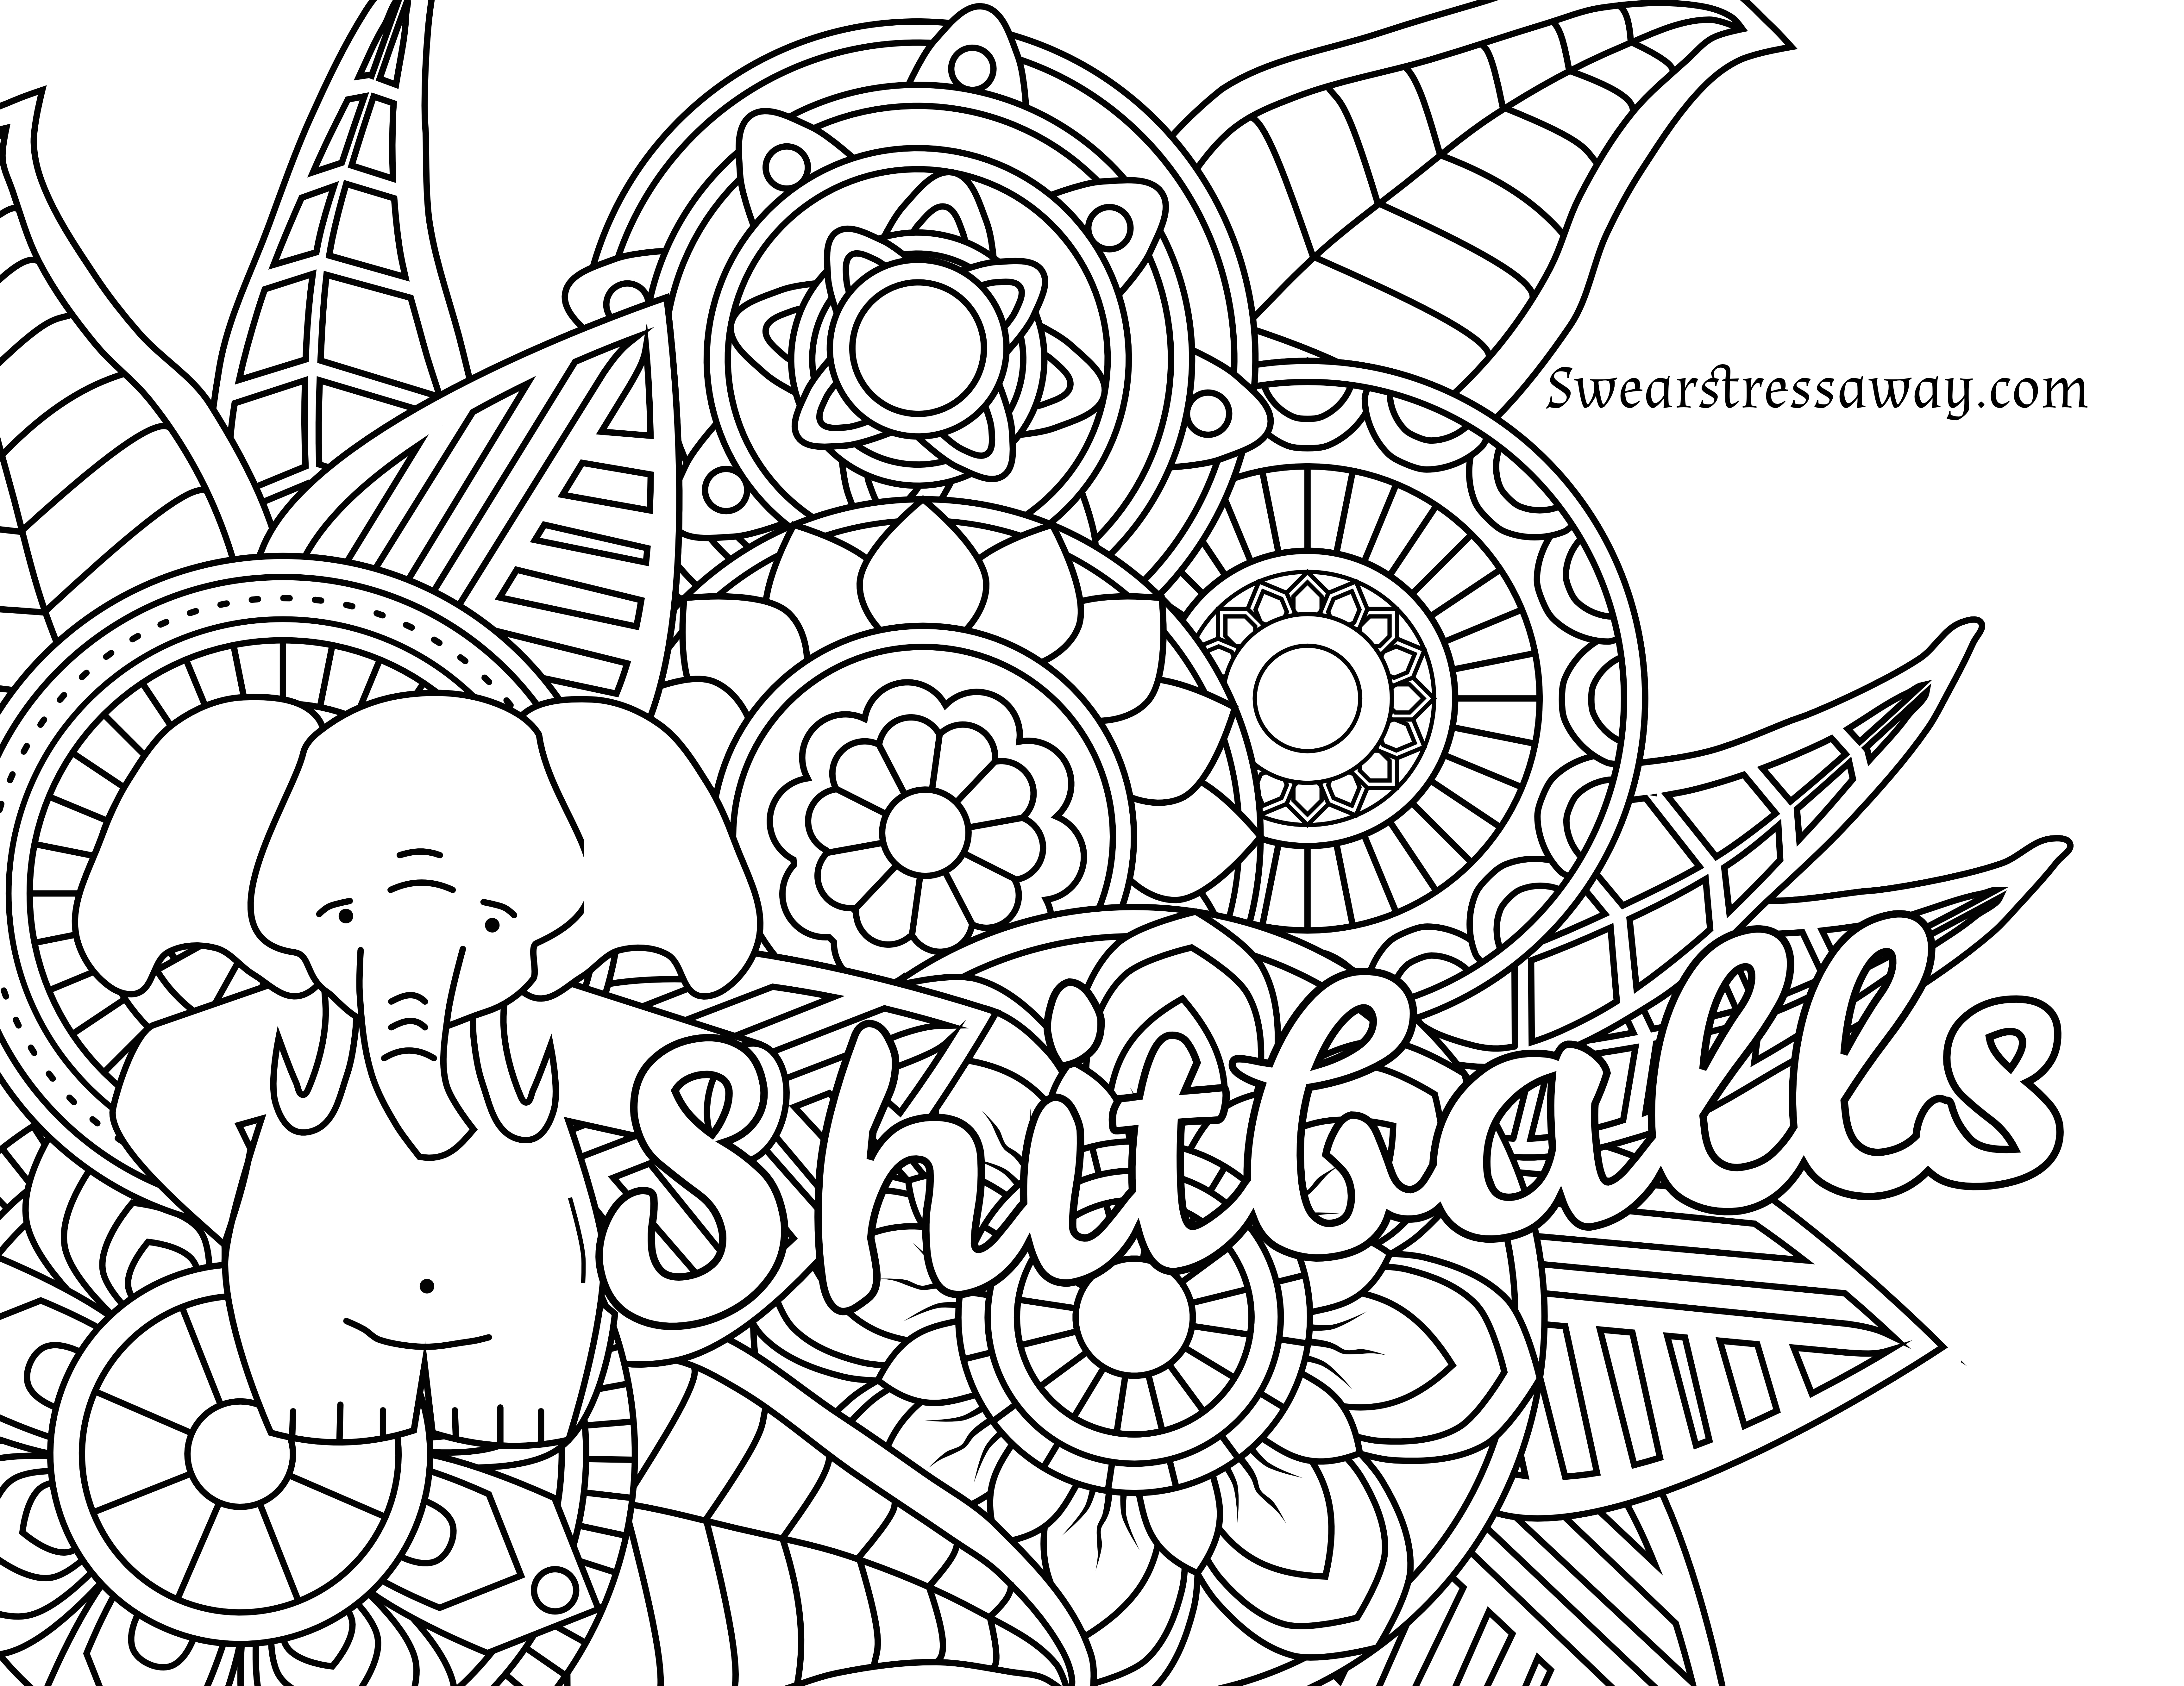 Coloring Ideas : Astonishing Coloring Books For Adults Free - Free Printable Coloring Books For Adults